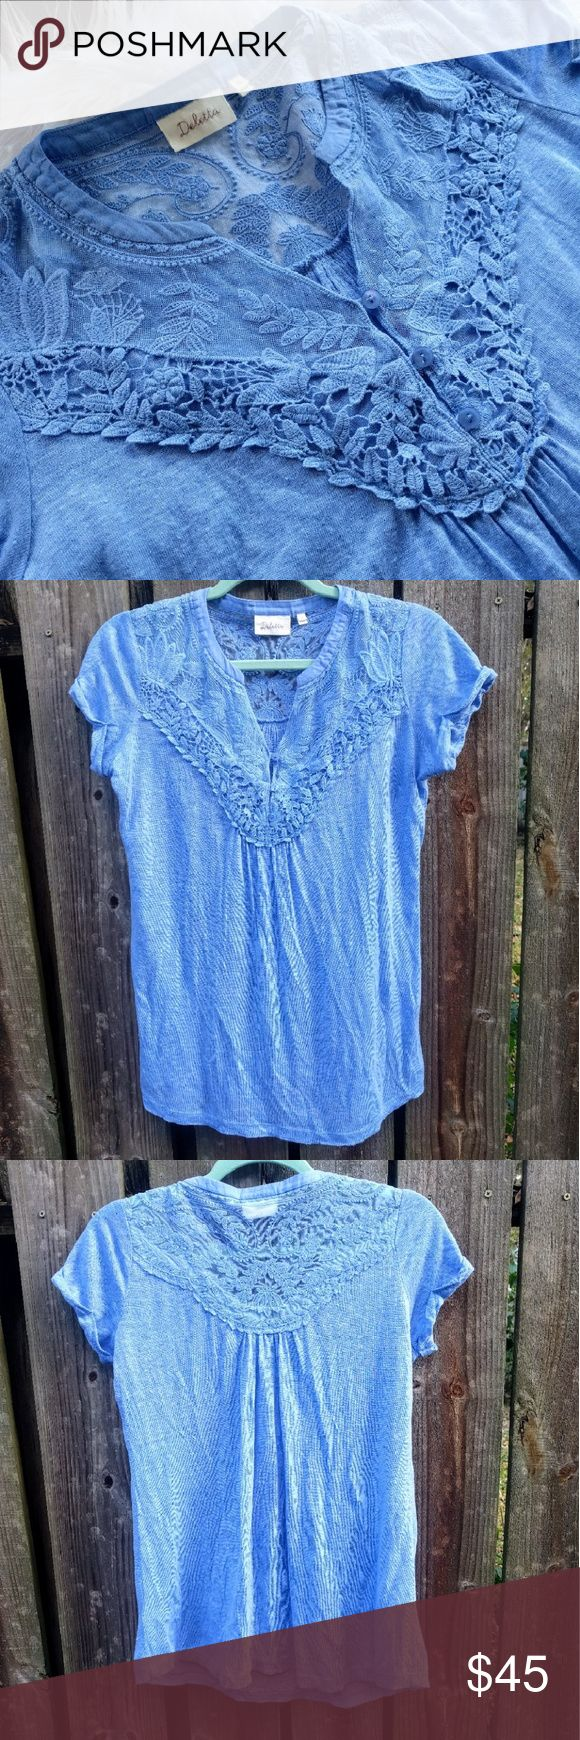 Deletta Periwinkle Embroidered Tee Features an embroidered front and back bodice, and button up front. The top of the back and front near the neck is a sheer tulle  material. The sleeves are rolled up by design and tacked down.   Top is in gently worn condition with no stains or holes. There seems to be some wear on the fabric, but that may be intentional & might've been like that new. See 4th pic.   Size XS, but it's loose enough to fit up to a Medium comfortably.  Armpit to armpit: abt…